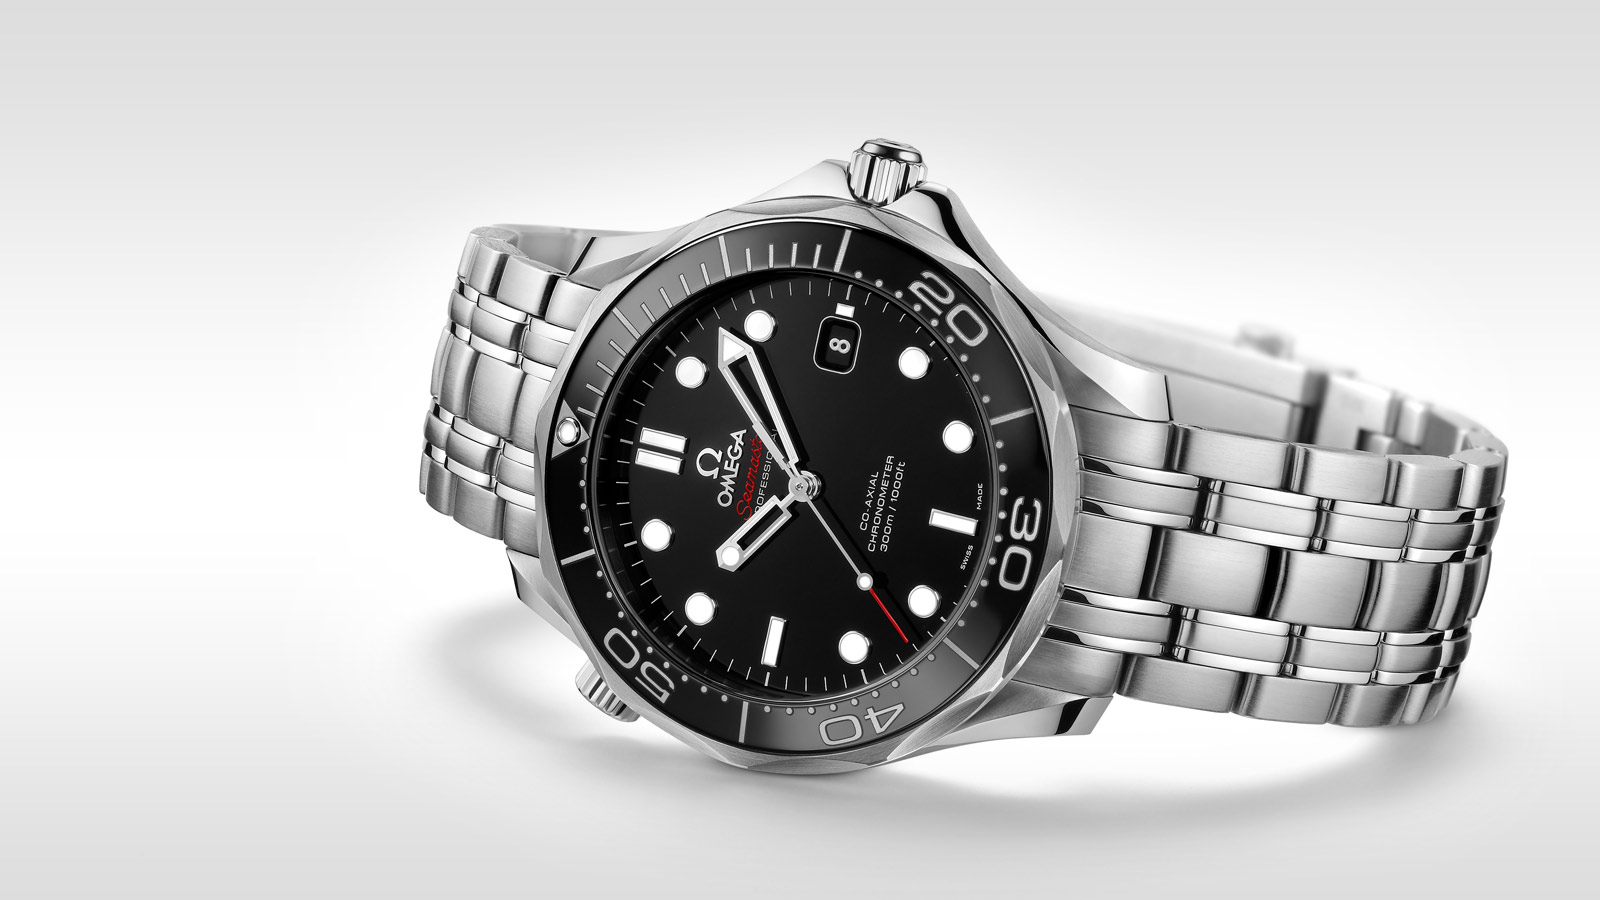 Omega B0072C8SMQ B0072C8SMQ OMEGA Seamaster Men's Steel Bracelet & Case Automatic Black Dial Analog Watch